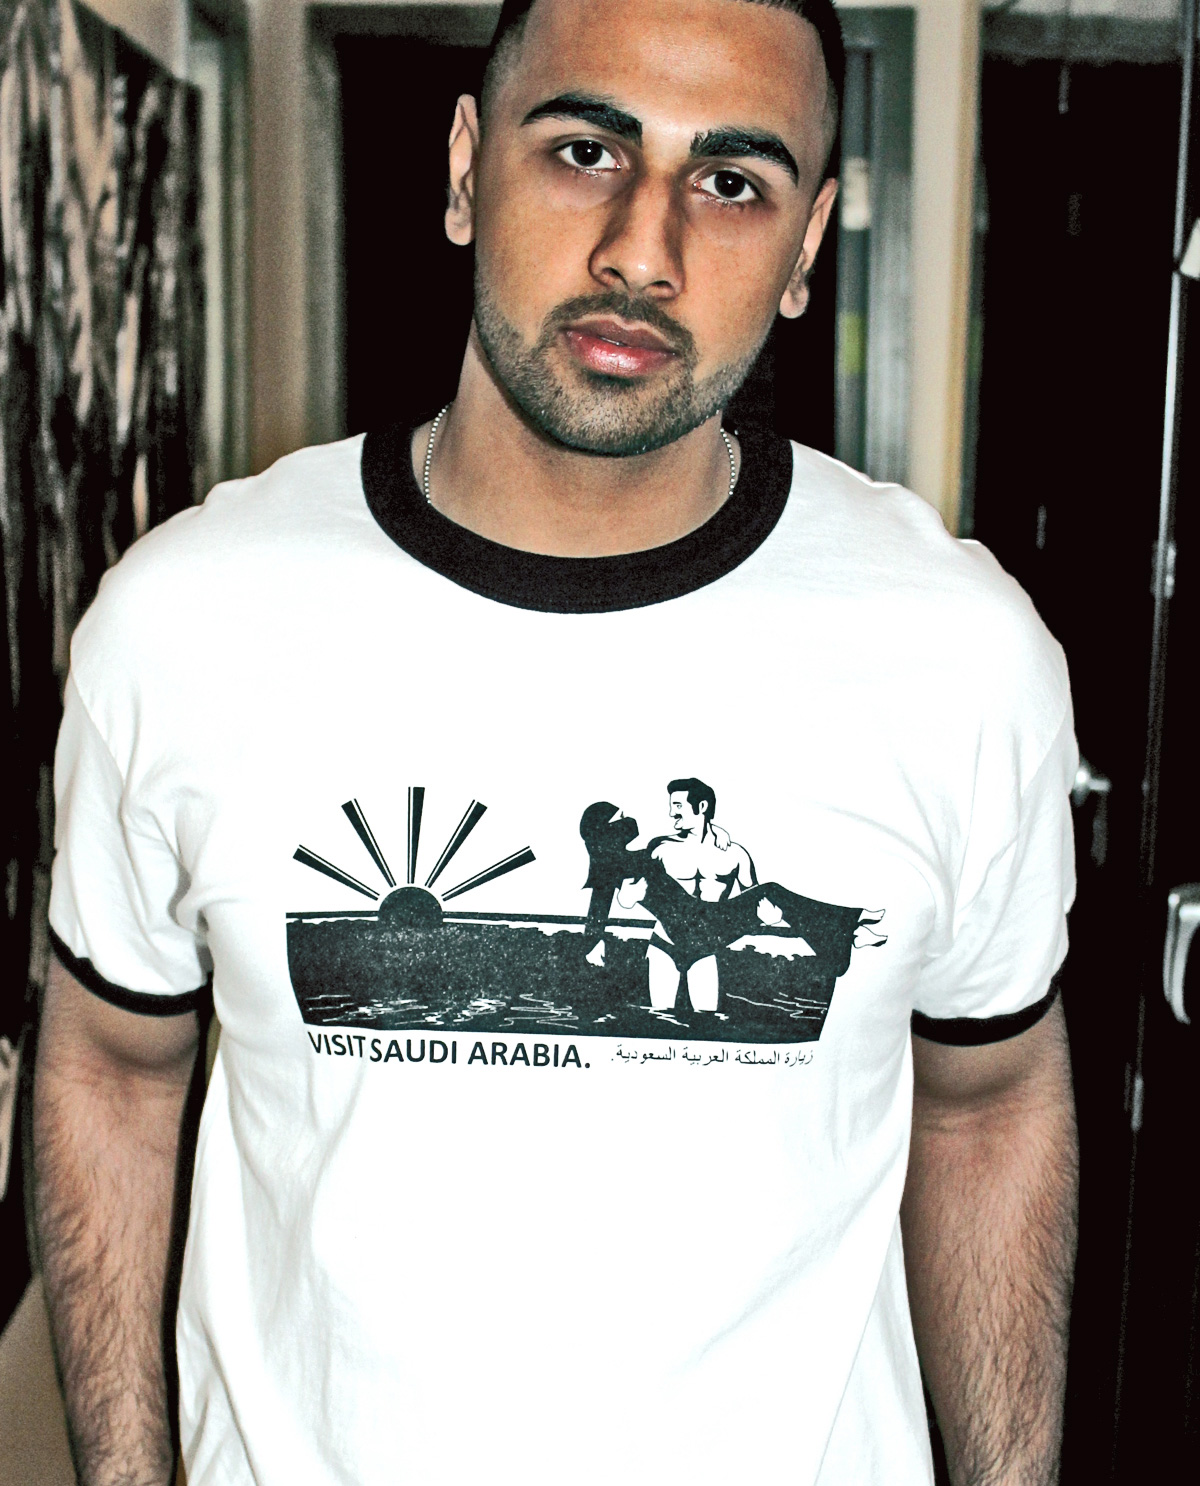 Visit Saudi Arabia Graphic Design T.shirt printed on white and black ringer t.shirt by Brown Man Clothing Co.